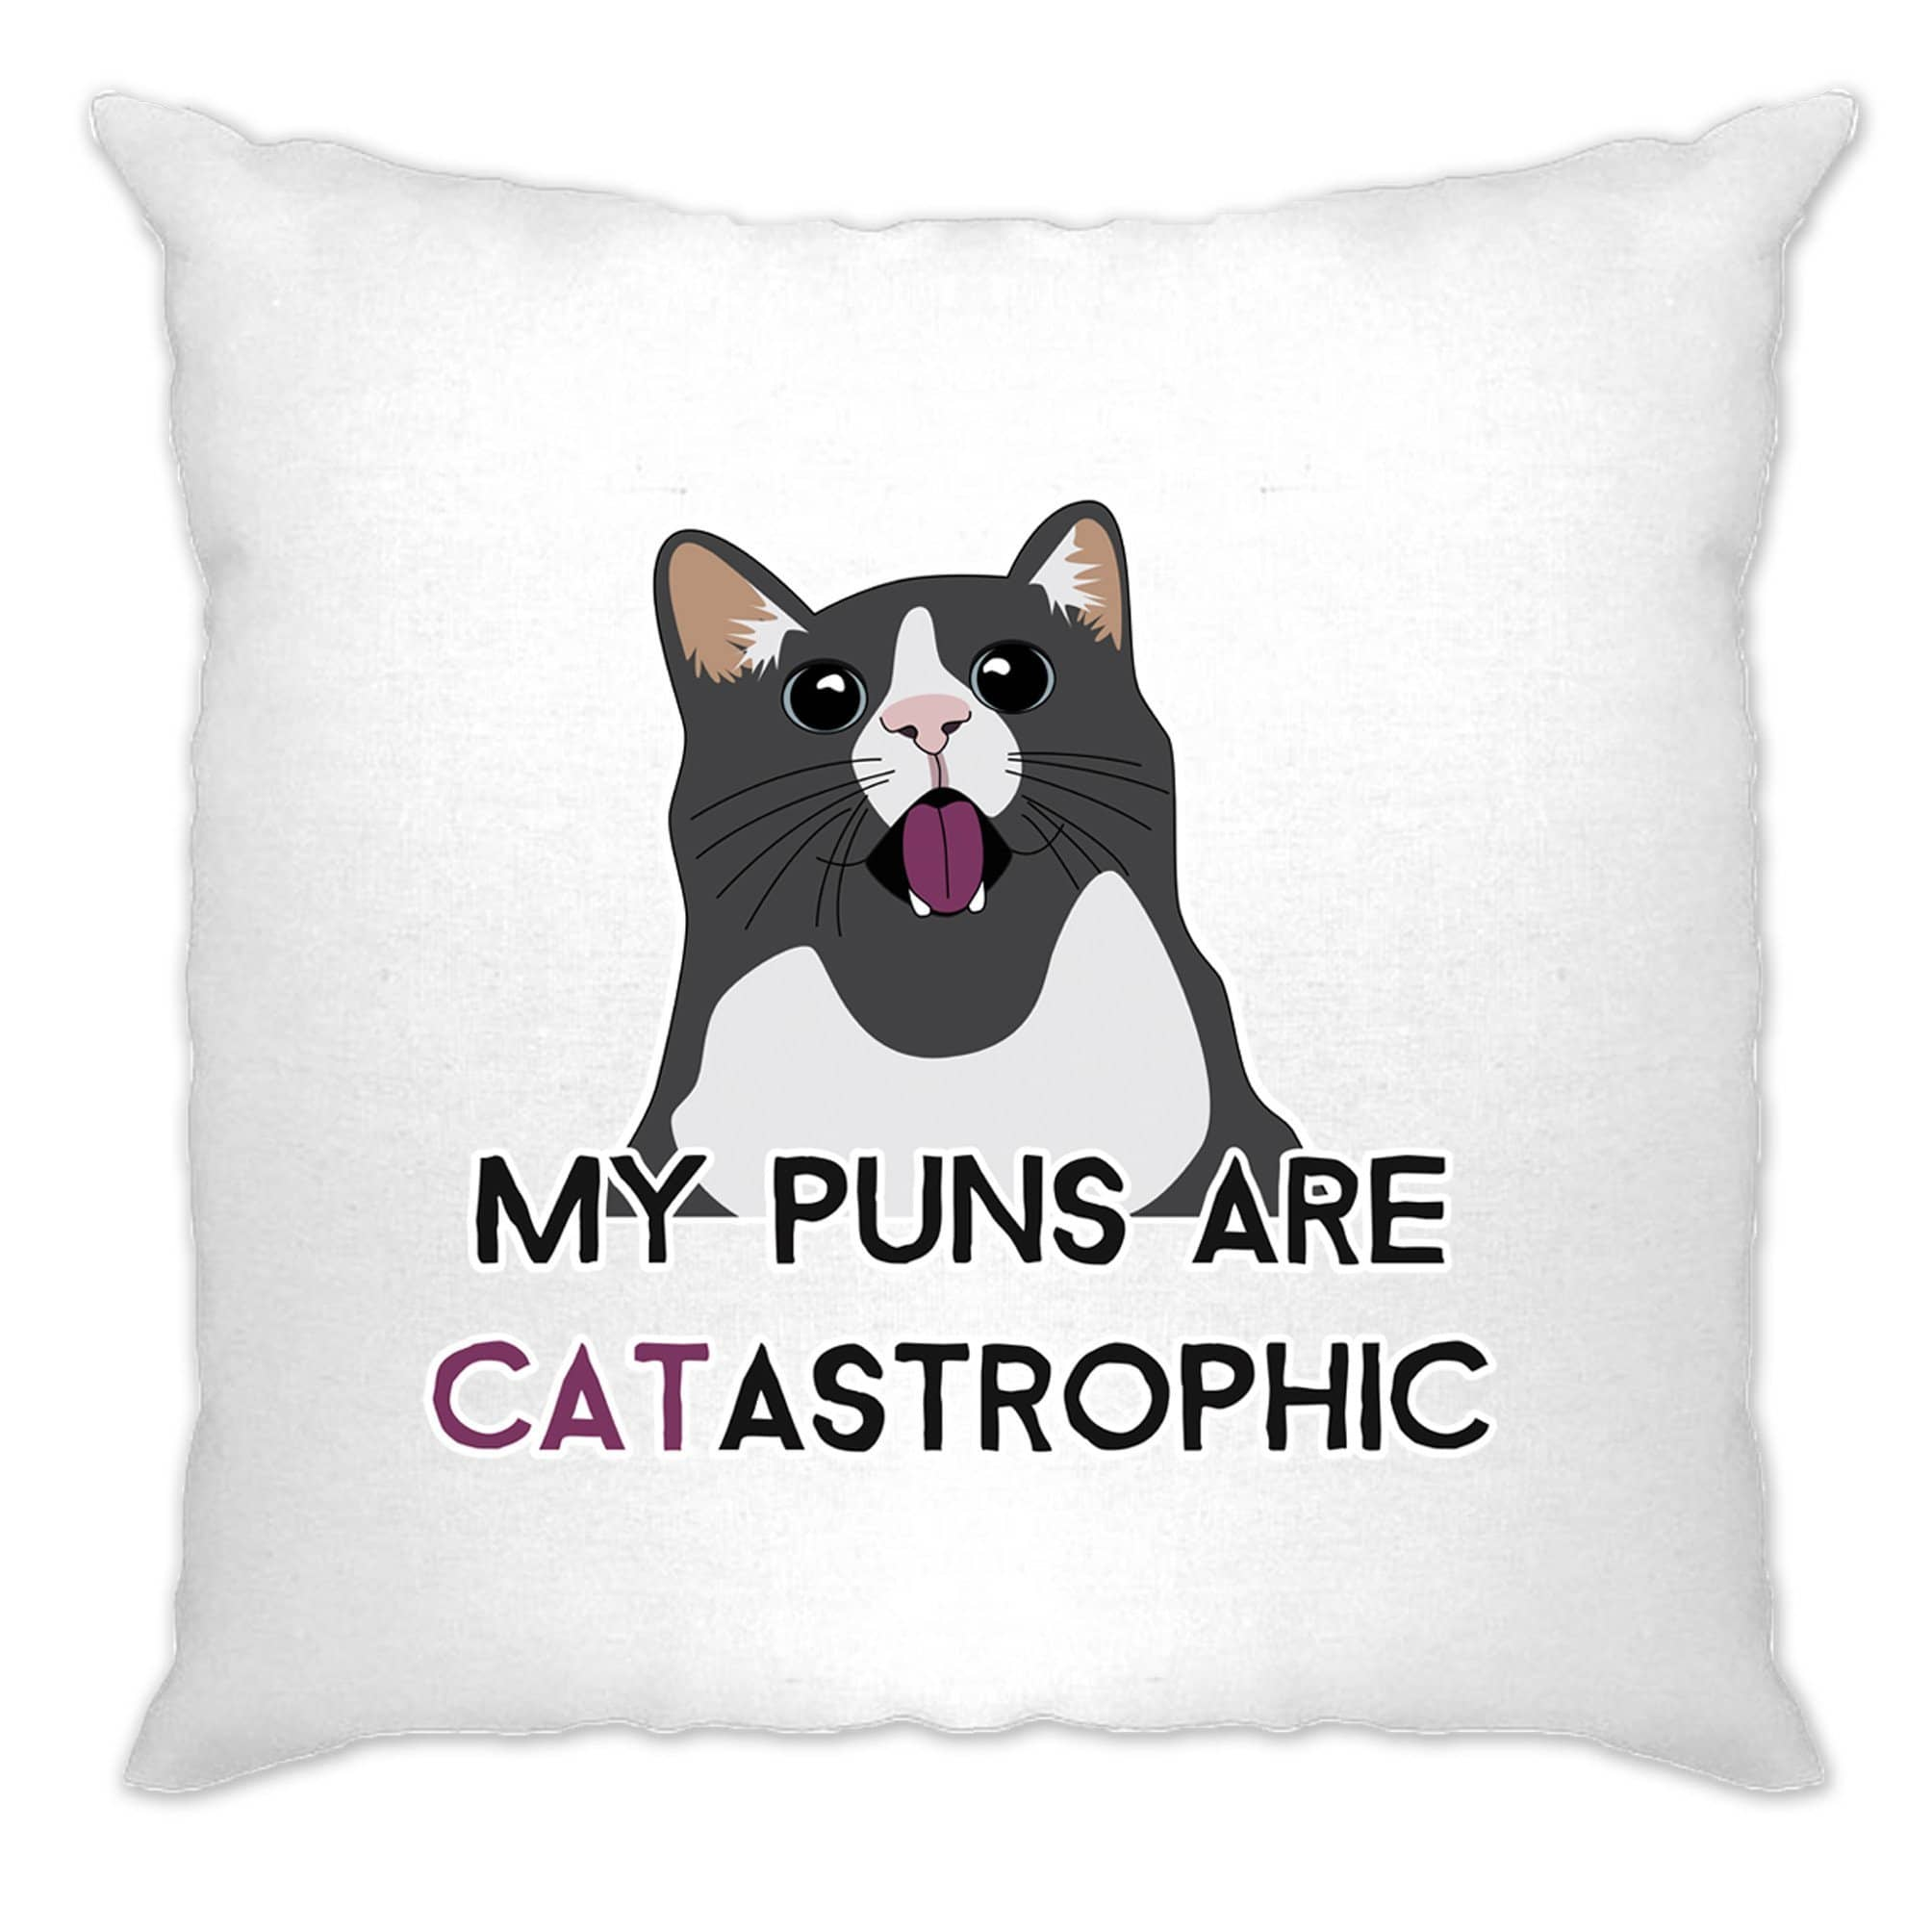 Novelty Cat Cushion Cover My Puns Are Catastrophic Joke